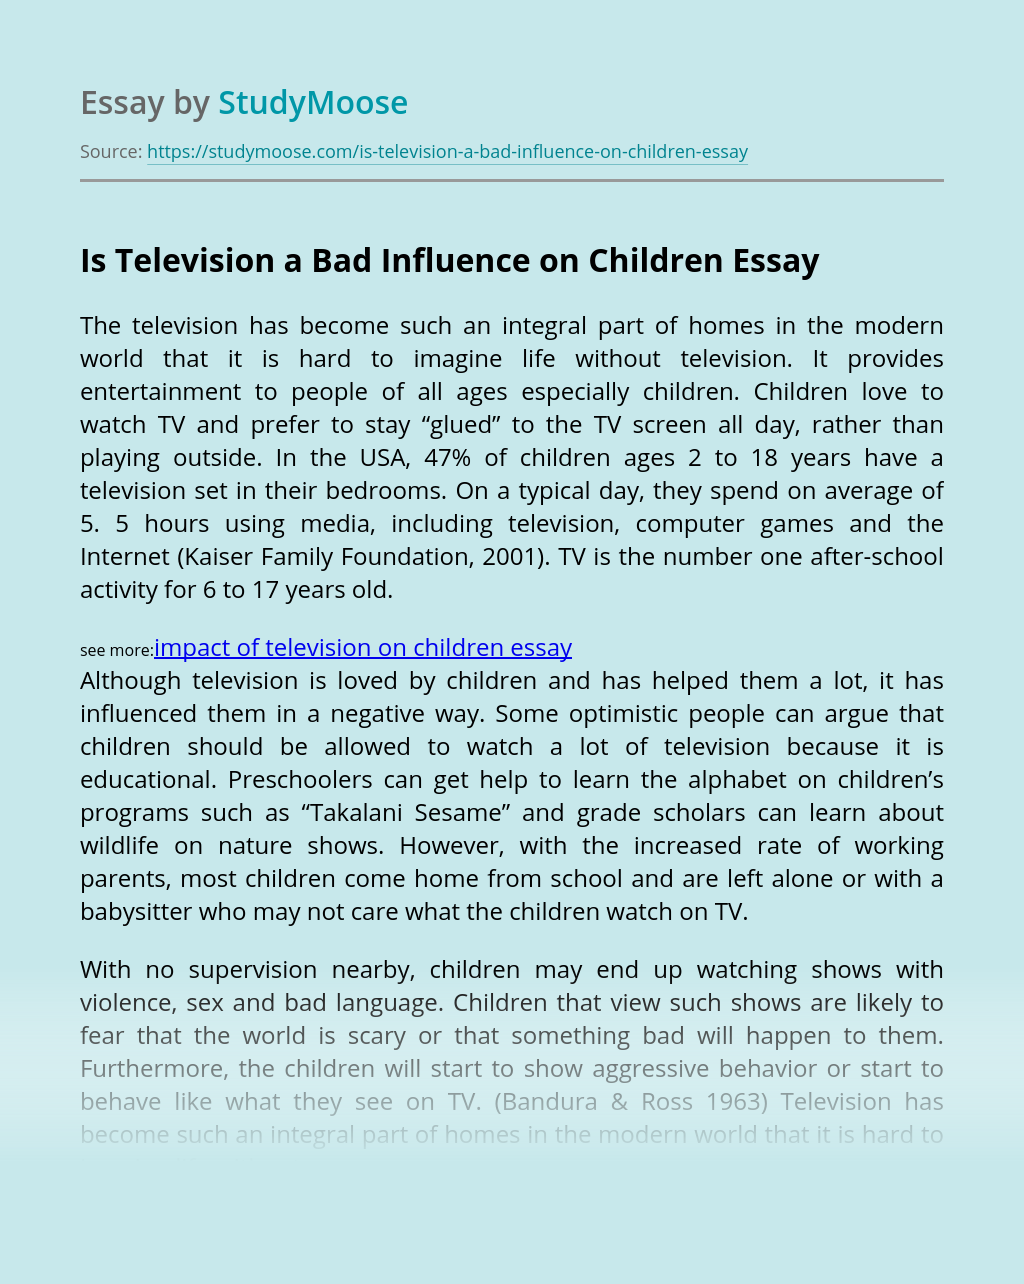 Is Television a Bad Influence on Children